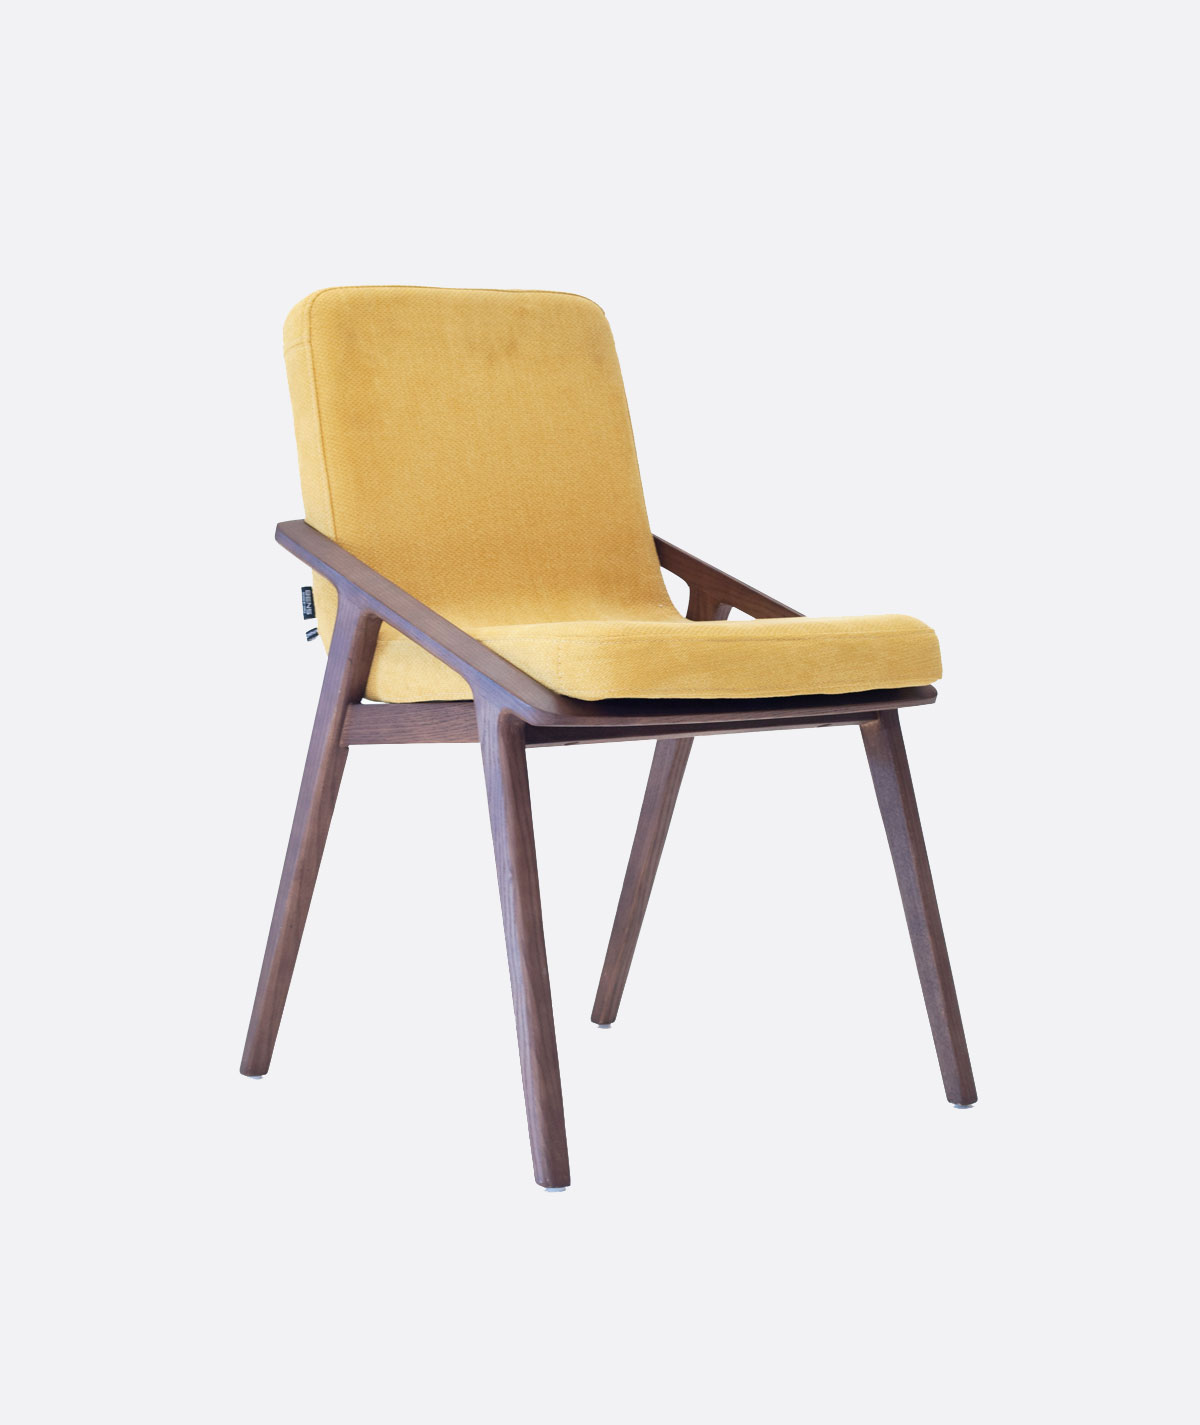 Arca Yellow Upholstered Dining Chair Walnut Wood Curved Seat Dining Chair Aura Interiors Cape Town